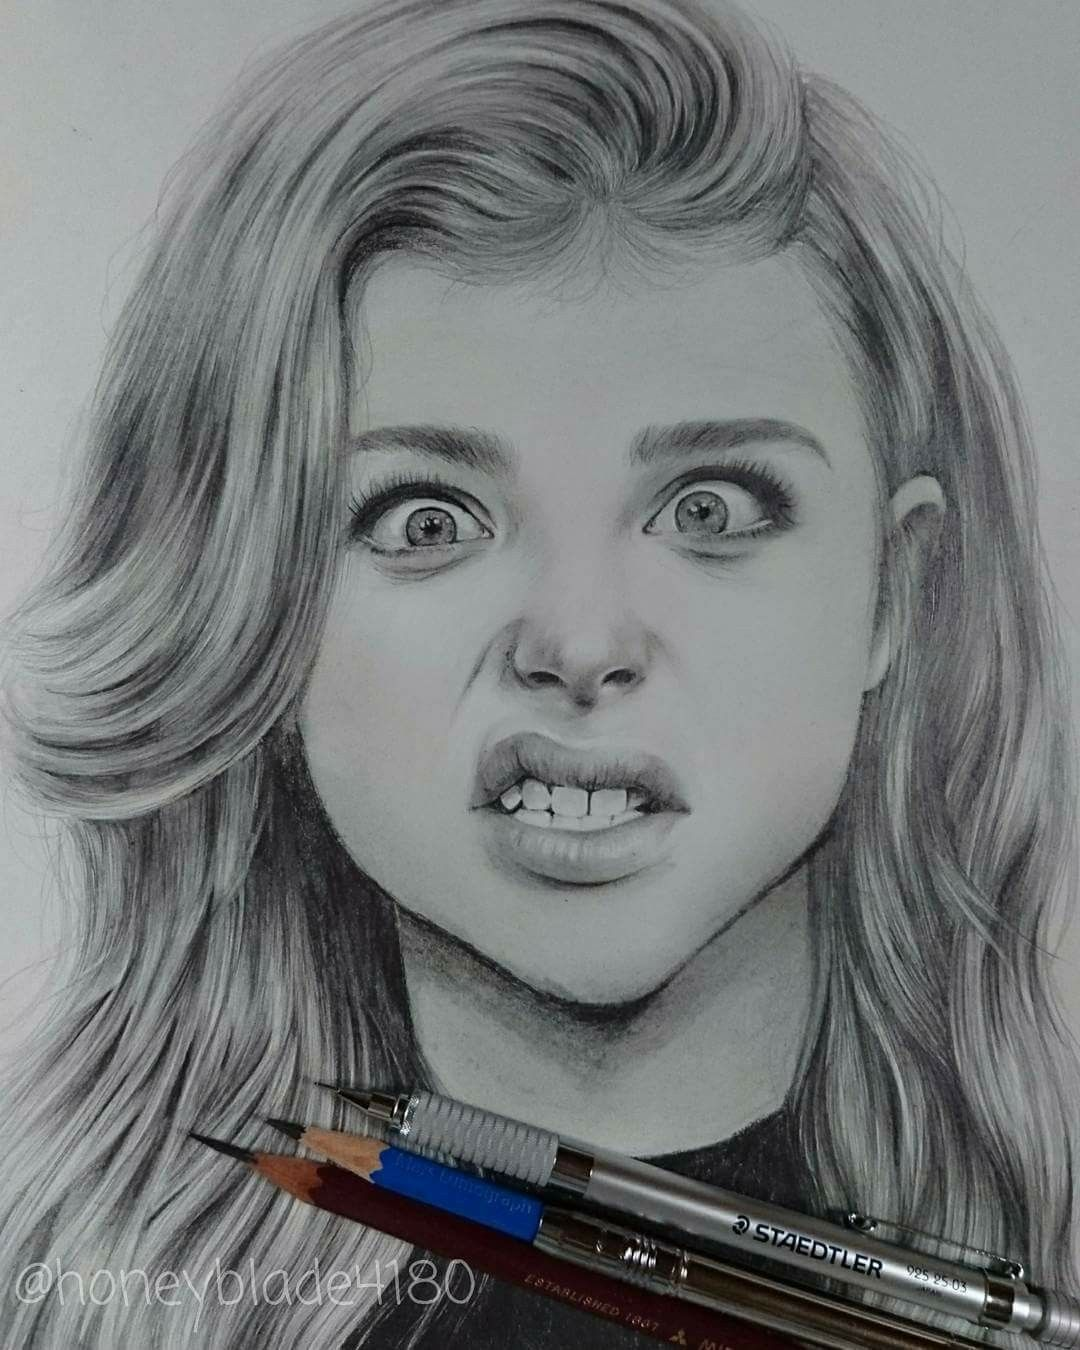 Honeyblafe4180 pencil sketches of faces cool pencil drawings graphite drawings realistic drawings